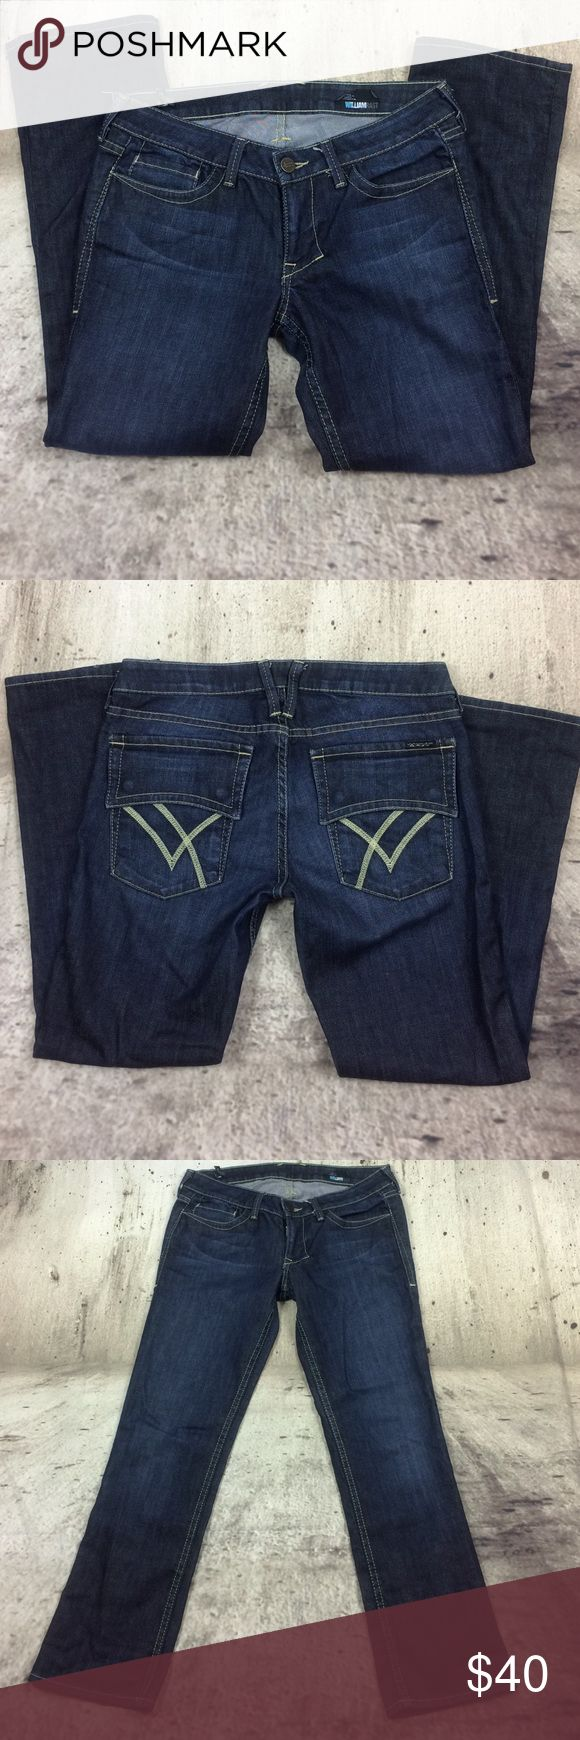 """William Rast the Capri flared and cropped jeans William Rast the Capri flared and cropped jeans cotton and spandex blend inseam 27""""rise 7.5"""" William Rast Jeans Ankle & Cropped"""